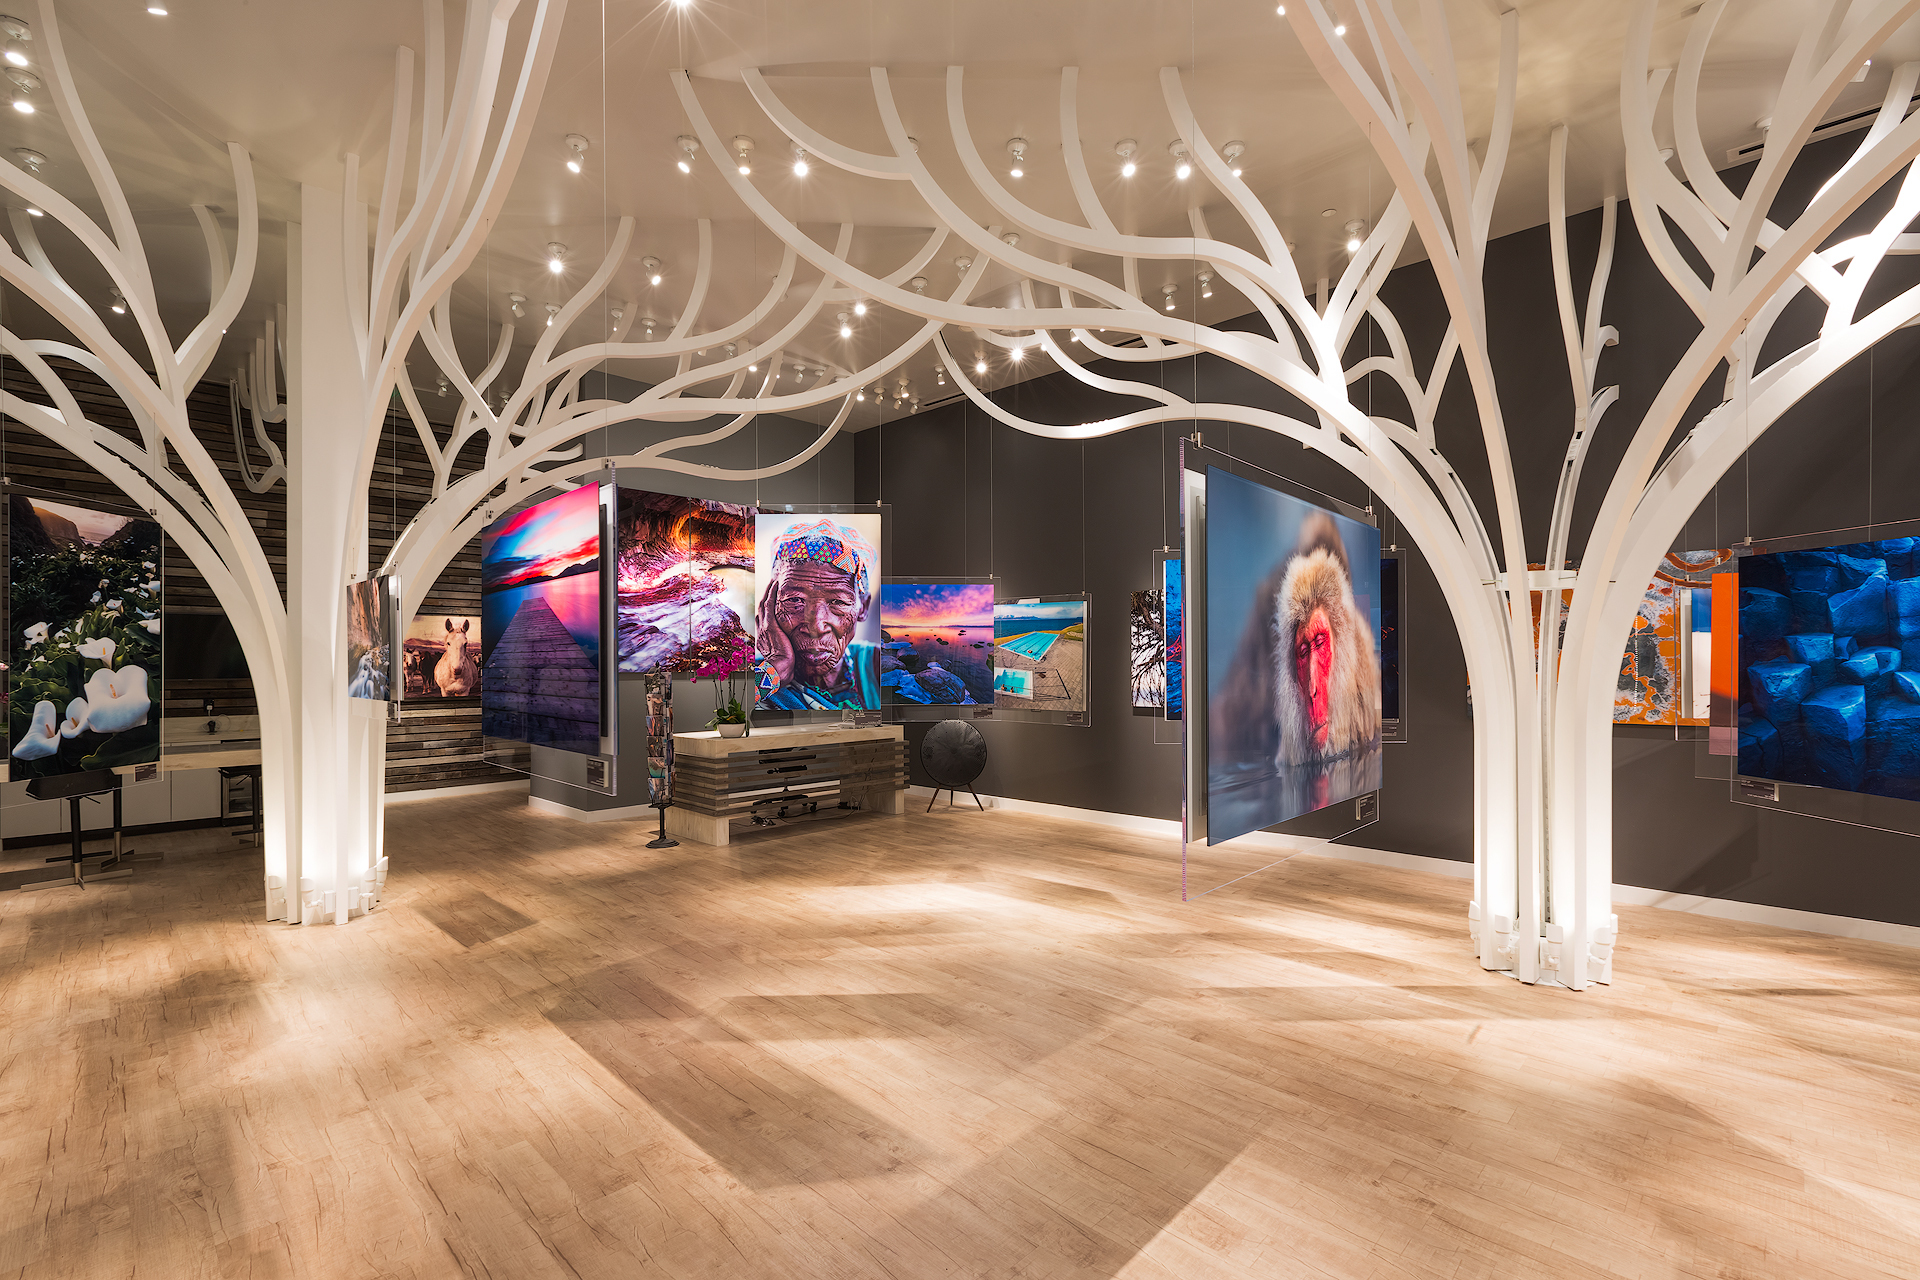 Soraau0027s LED Lighting Perfectly Illuminates the Innovative Andrei Duman Gallery | Business Wire & Soraau0027s LED Lighting Perfectly Illuminates the Innovative Andrei ... azcodes.com